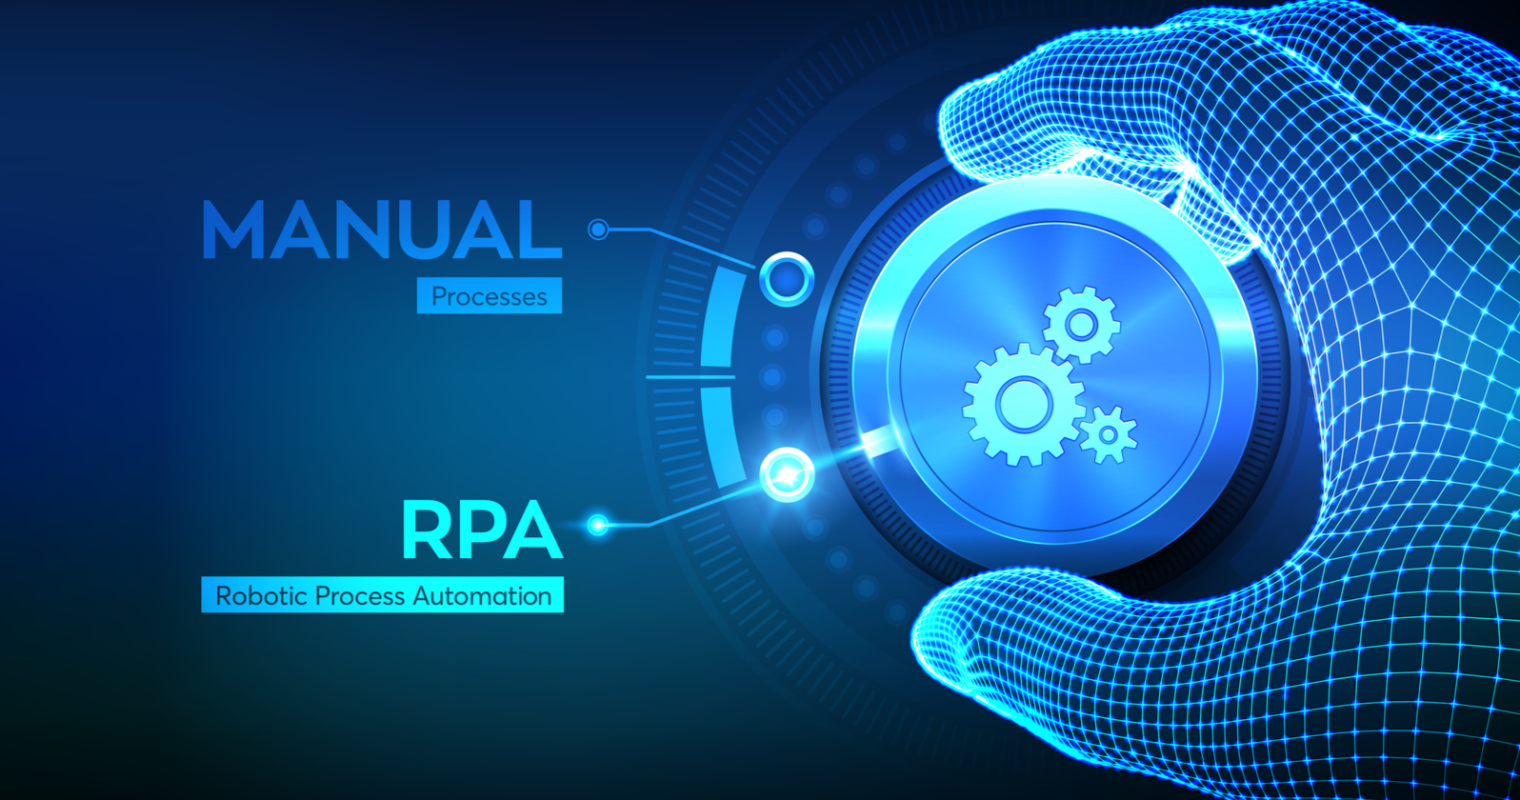 Marketing Automation & Data: 2 Contradictory Elements We Need to Discuss